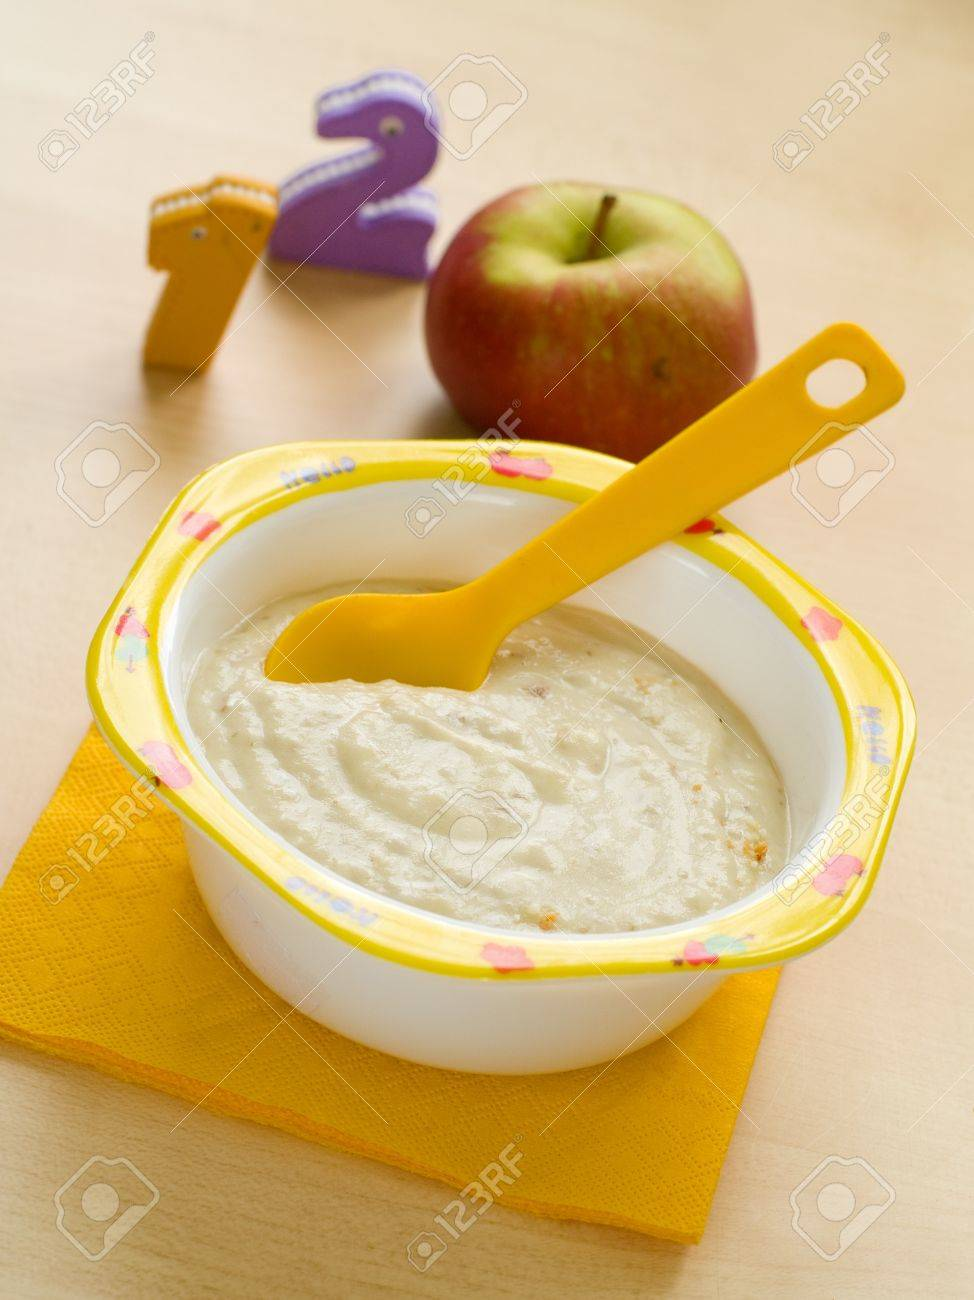 A bowl of oatmeal porridge for baby. Shot for a story on homemade, organic, healthy baby foods. Stock Photo - 8566705